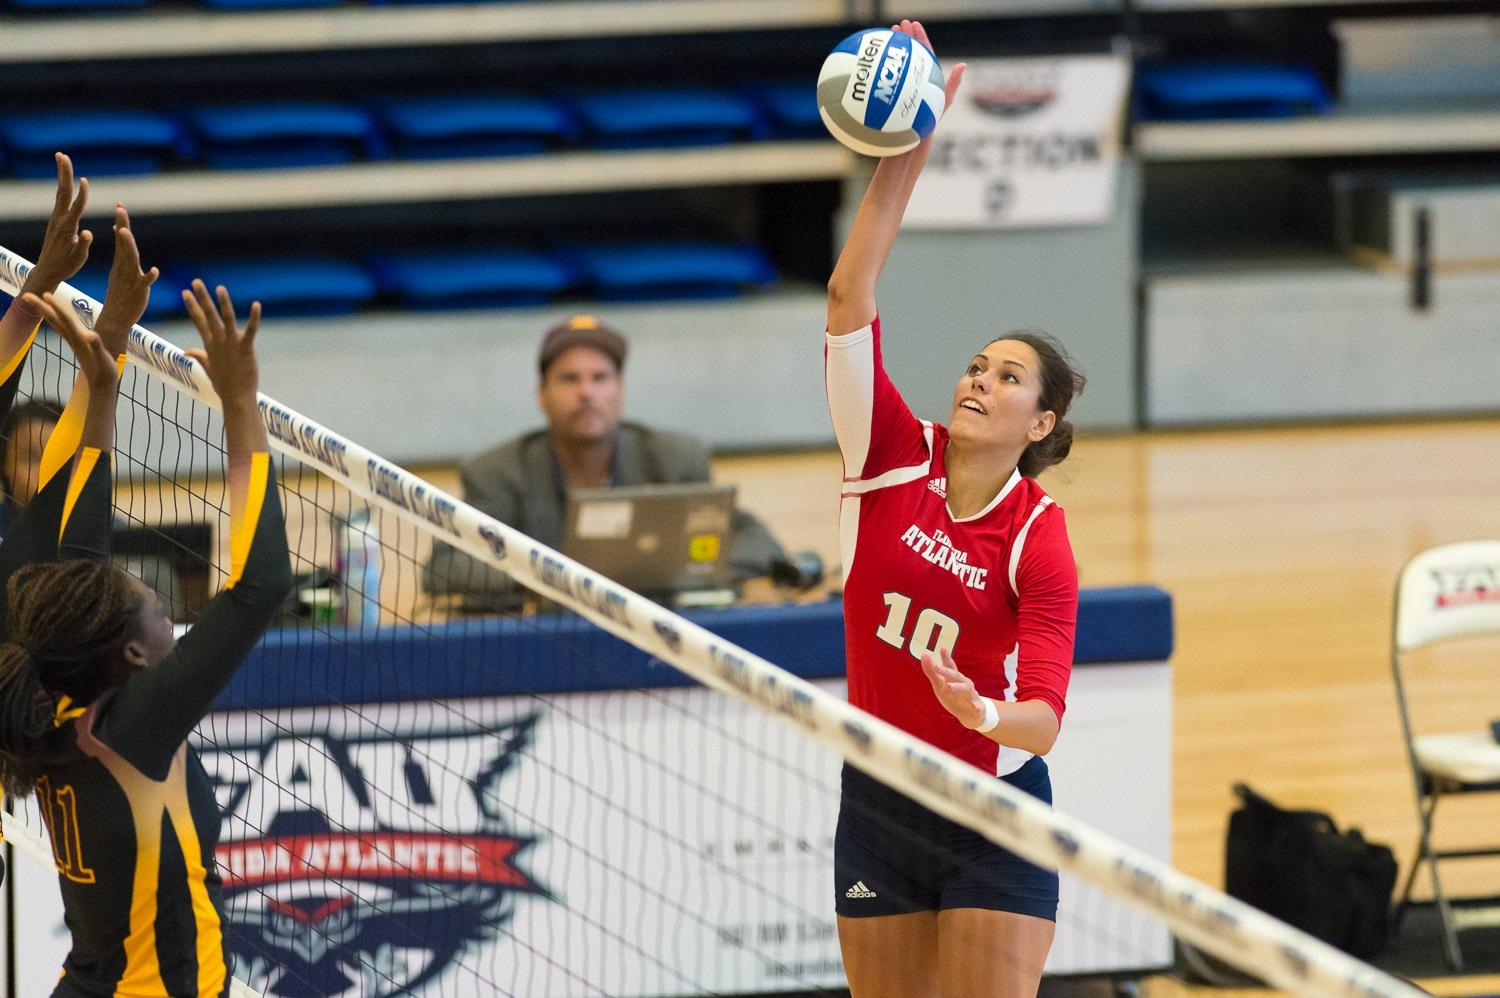 Ivana Bulajic, Owls middle blocker/right side hitter spikes the ball during FAU's match against Bethune Cookman on Friday, August 29th. Max Jackson | Photo Editor